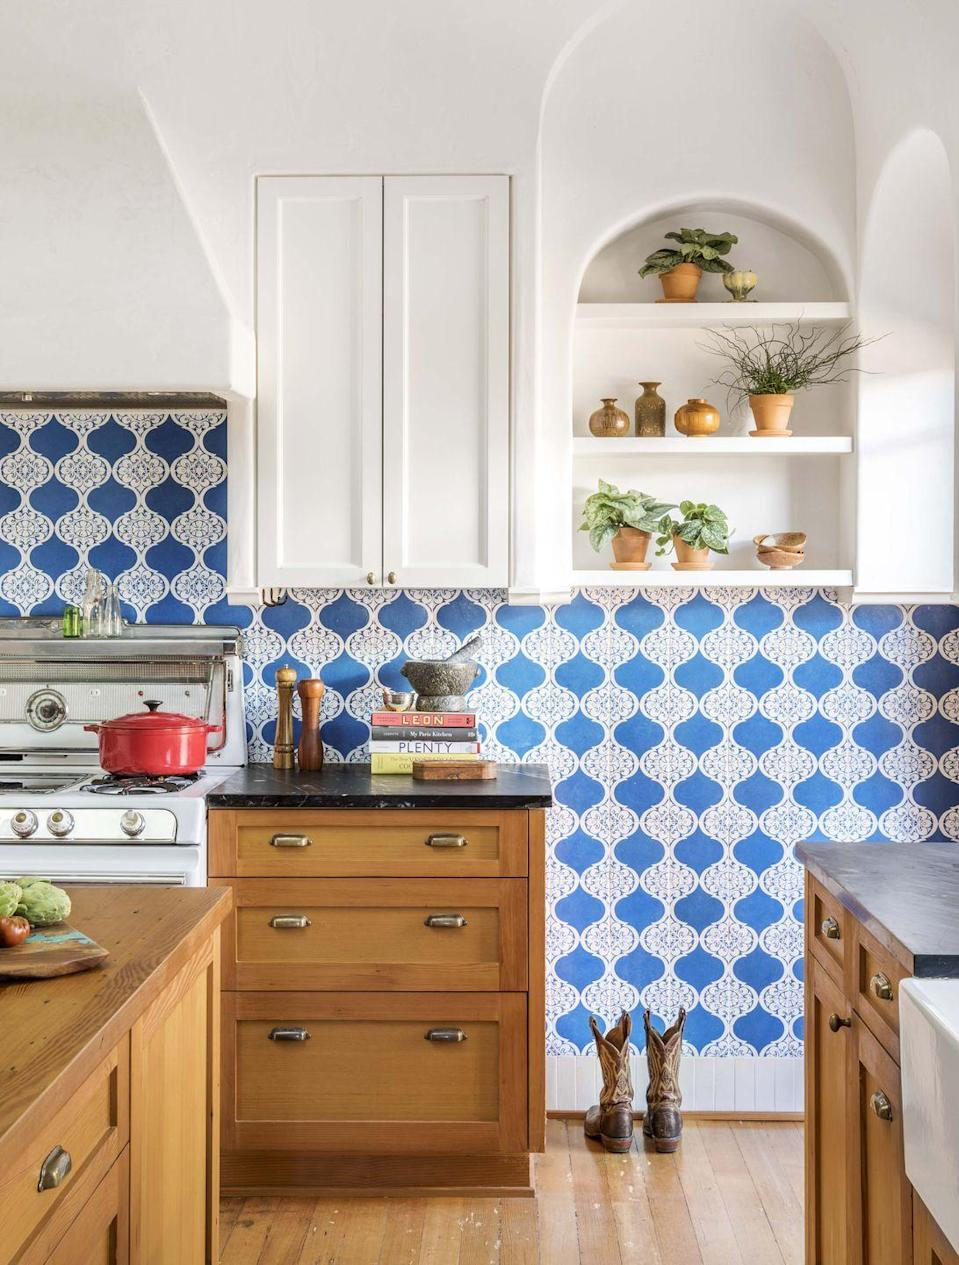 "<p>Try a bold tile to bridge the transition between a darker and lighter colors. We're obsessed with the blue encaustic tile in <a href=""https://www.housebeautiful.com/design-inspiration/home-makeovers/a25647683/dark-kitchen-reclaimed-wood-before-after/"" rel=""nofollow noopener"" target=""_blank"" data-ylk=""slk:this kitchen"" class=""link rapid-noclick-resp"">this kitchen </a>by Steve Pallrand, especially when warmed up by classic wood cabinets and a little plant collection. </p>"